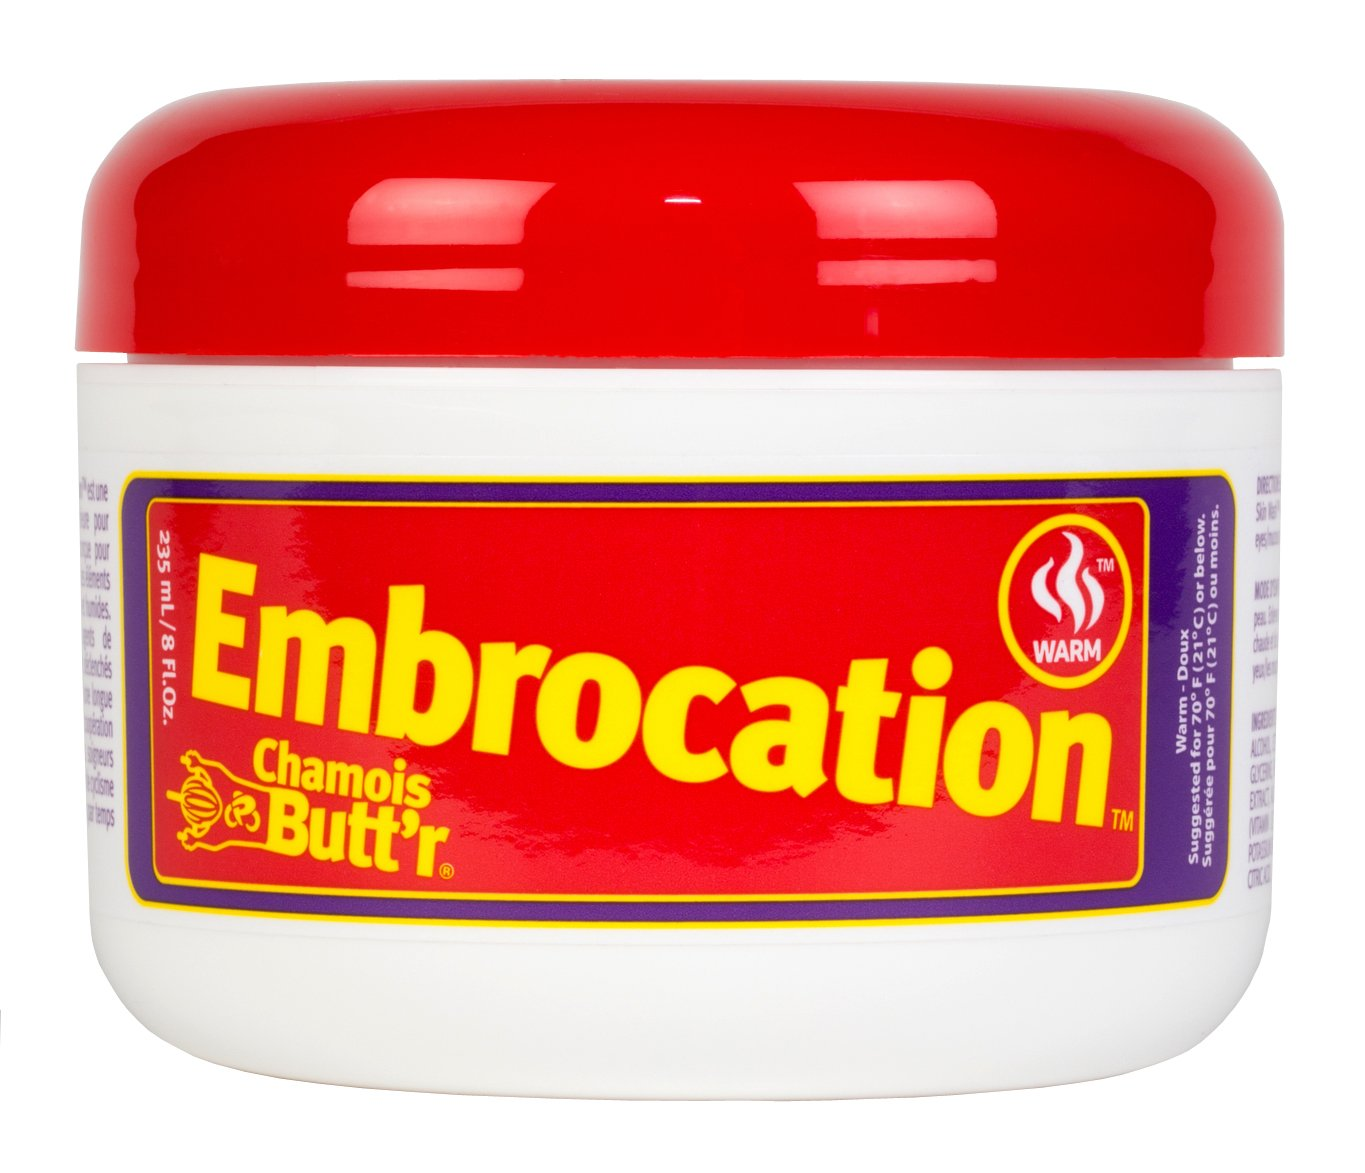 Chamois Butt'r Warm Embrocation 8oz jar